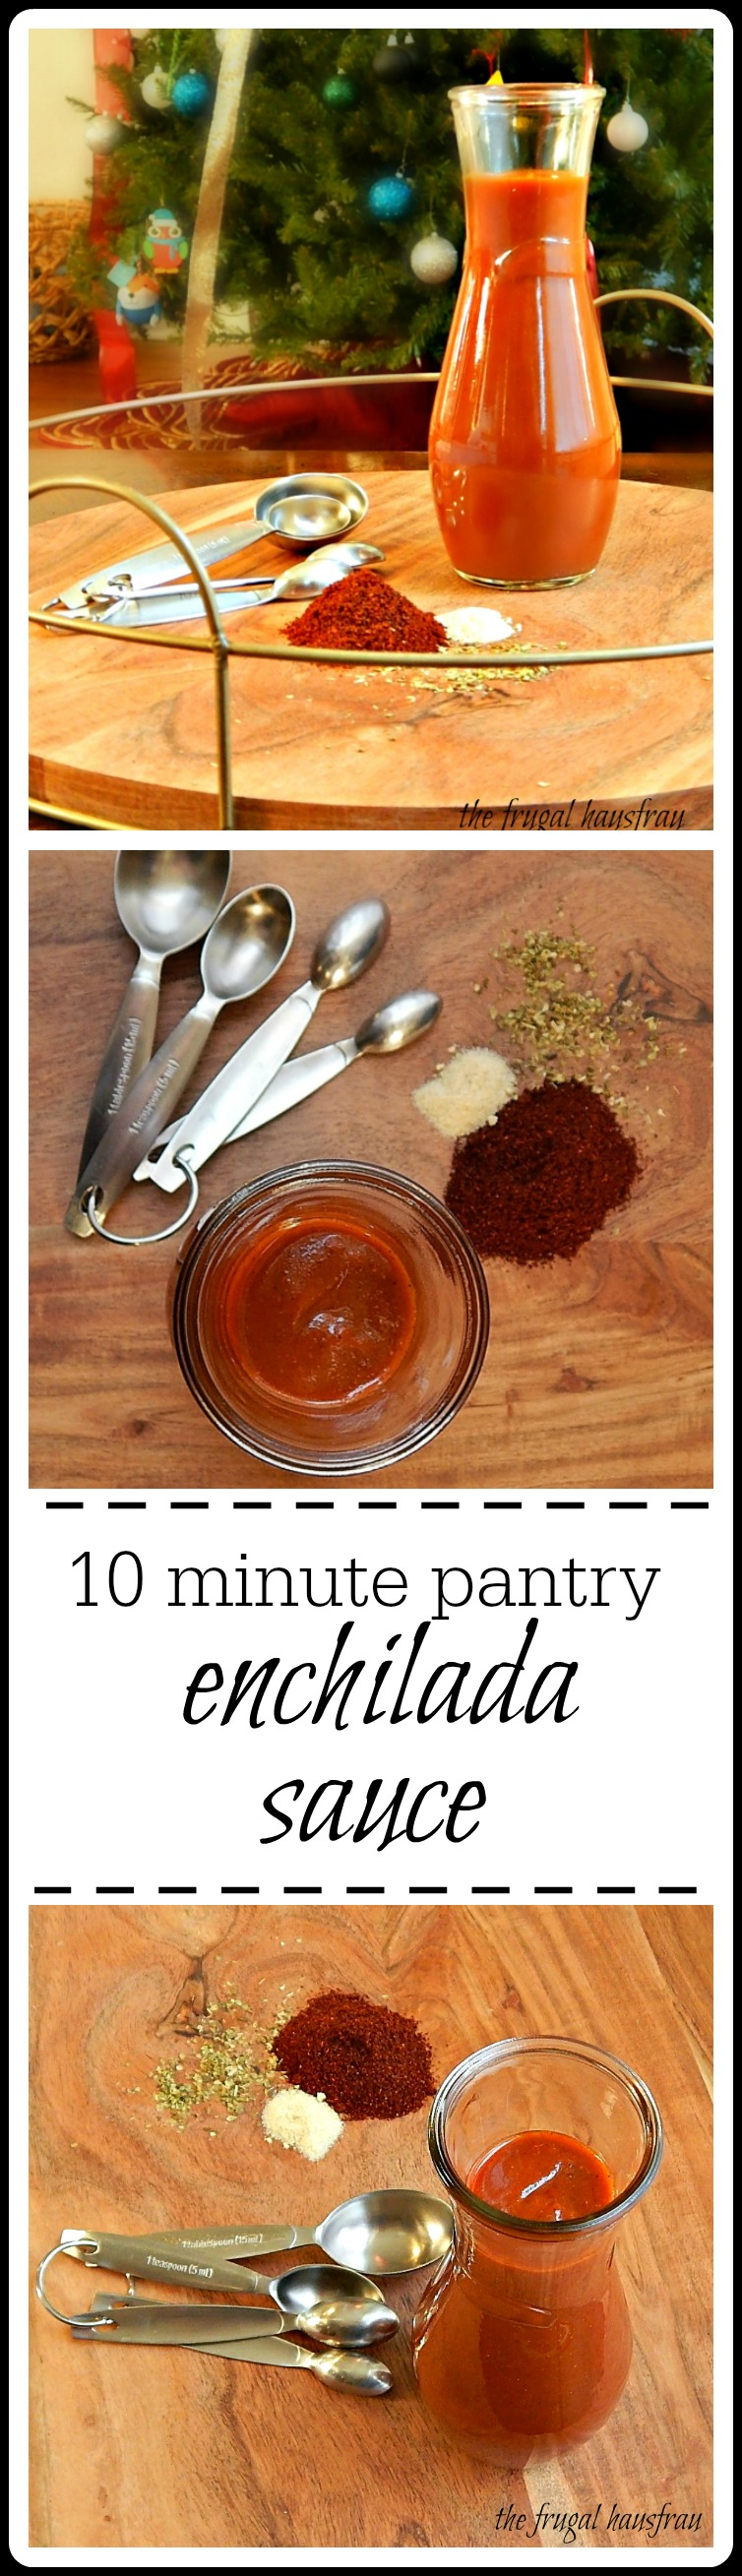 Pantry Enchilada Sauce: Under 10 minutes with ingredients you probably have at home and better than any canned or jarred enchilada sauce. #PantryEnchiladaSauce #HomemadeEnchiladaSauce #EasyEnchiladaSauce